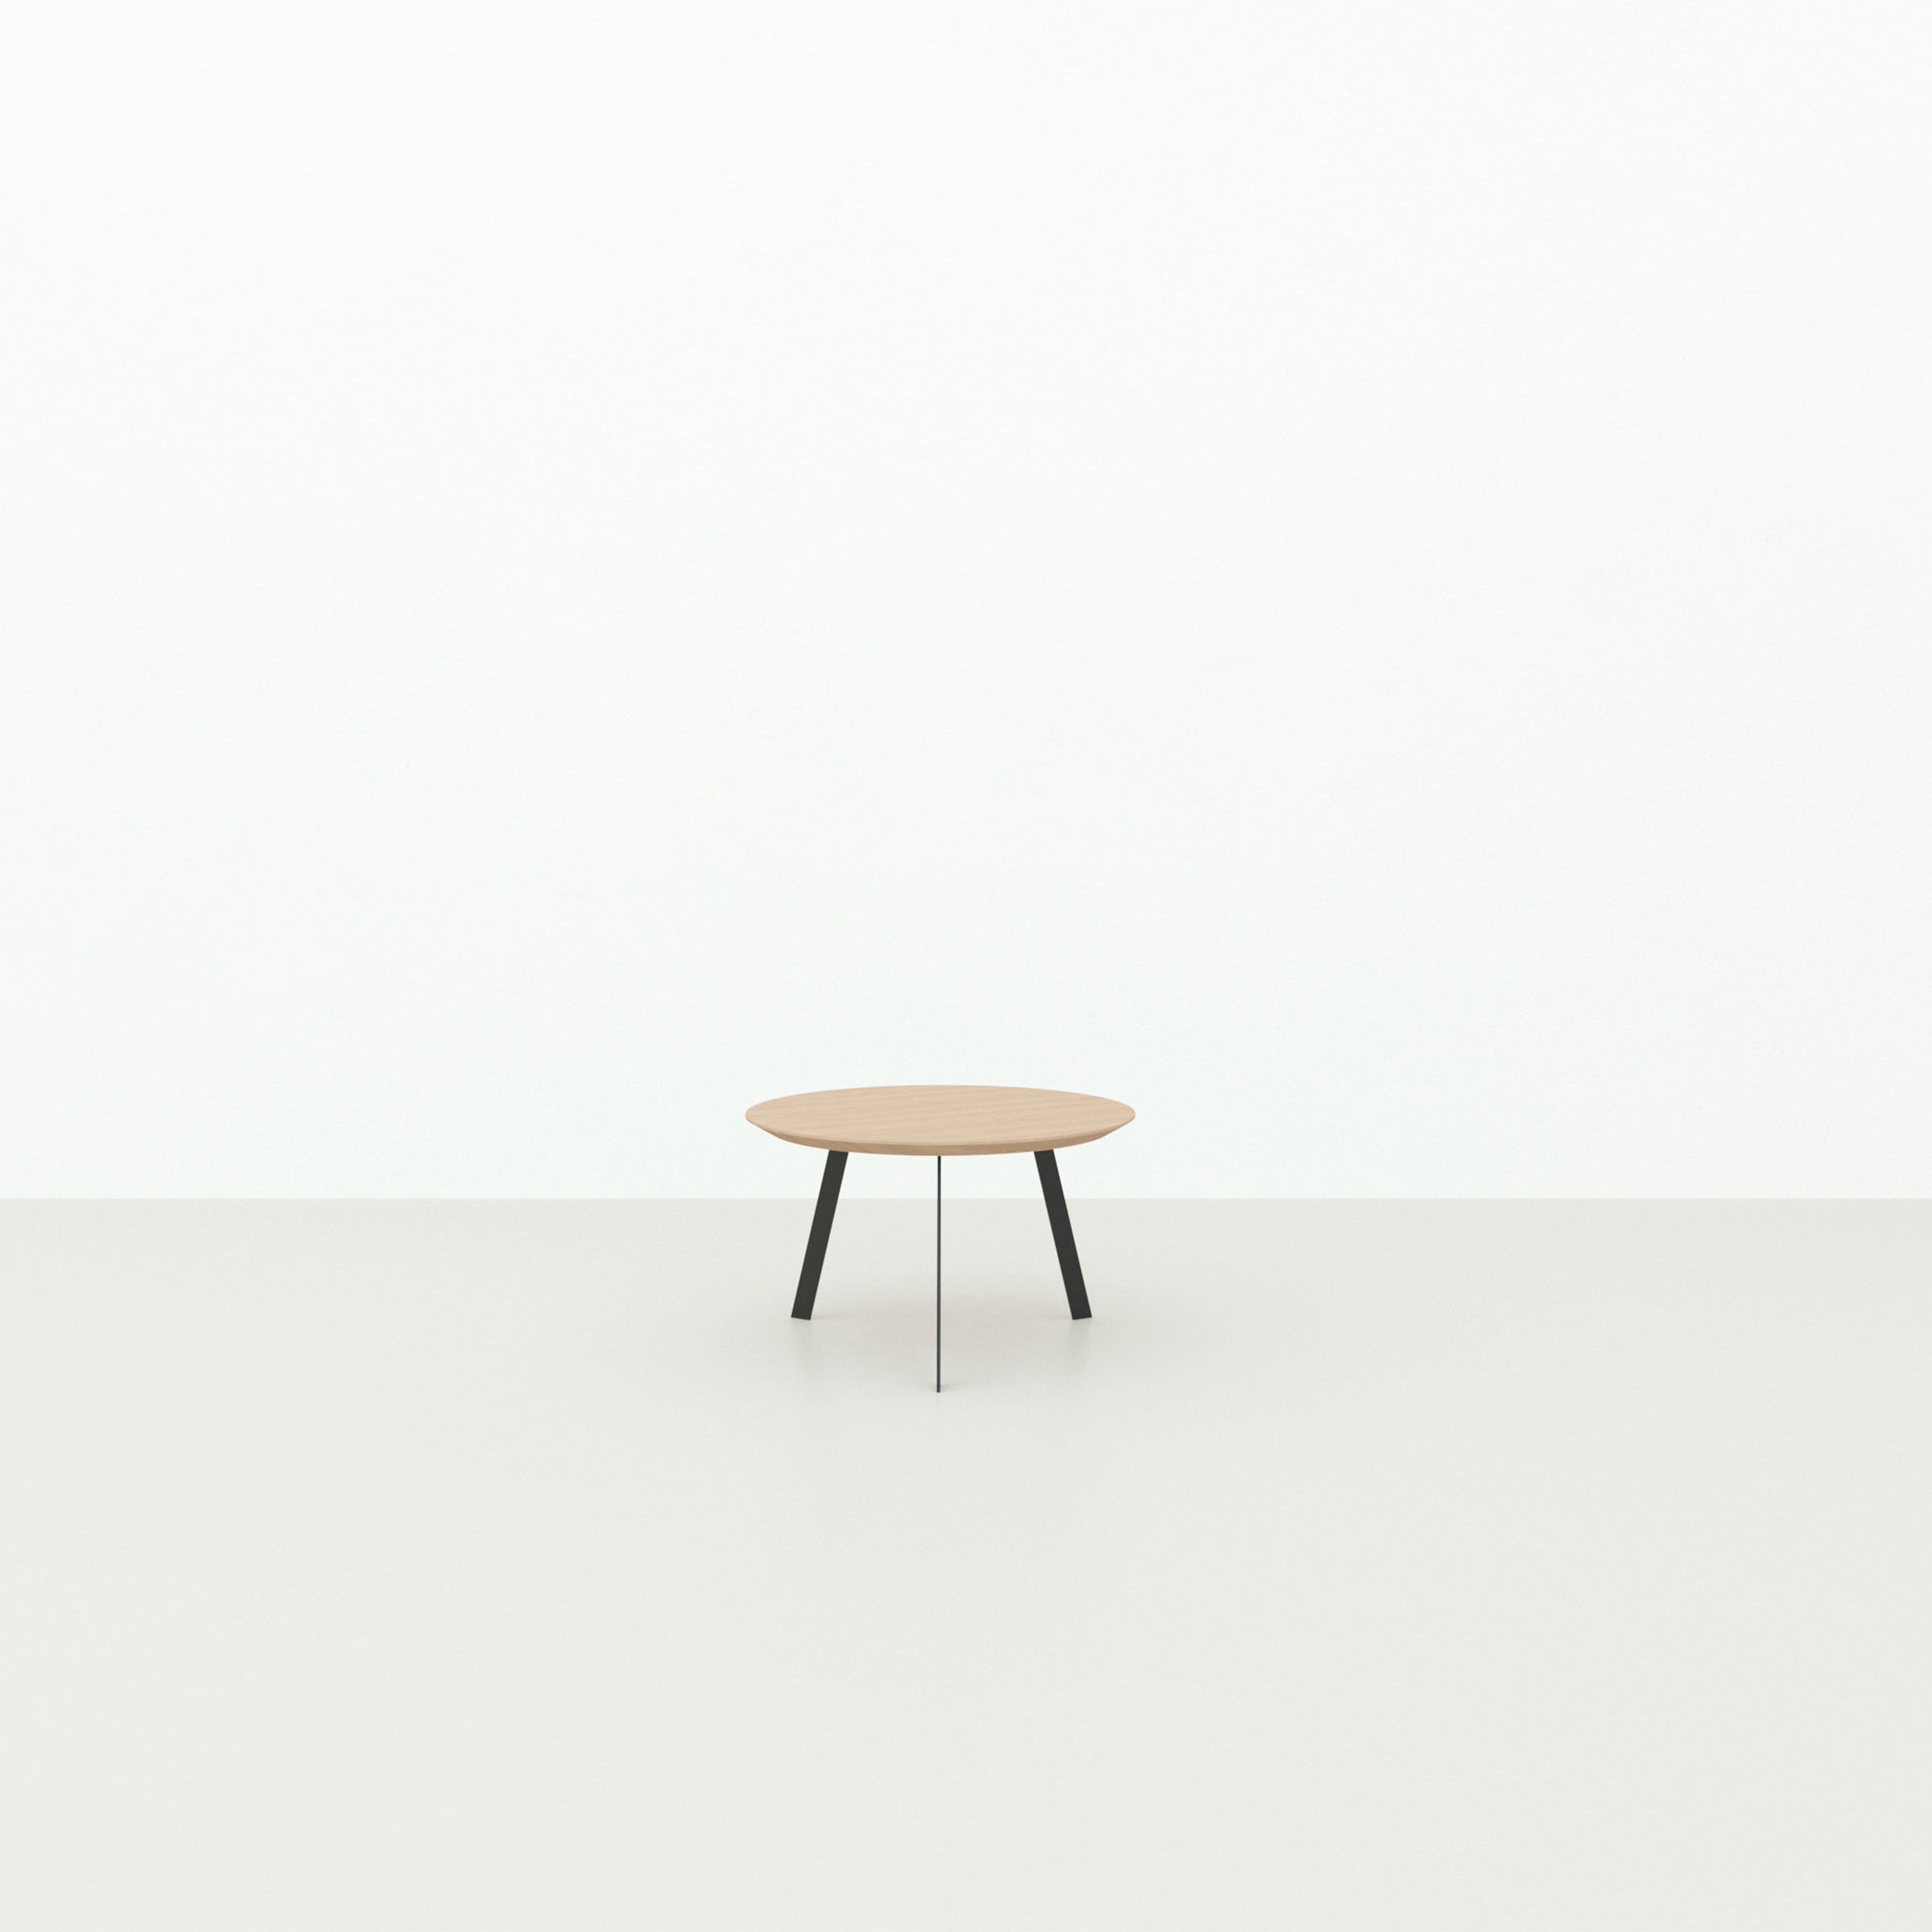 Design salontafel | New Co Coffee Table 90 Square Black | Oak hardwax oil natural light 3041 | Studio HENK |